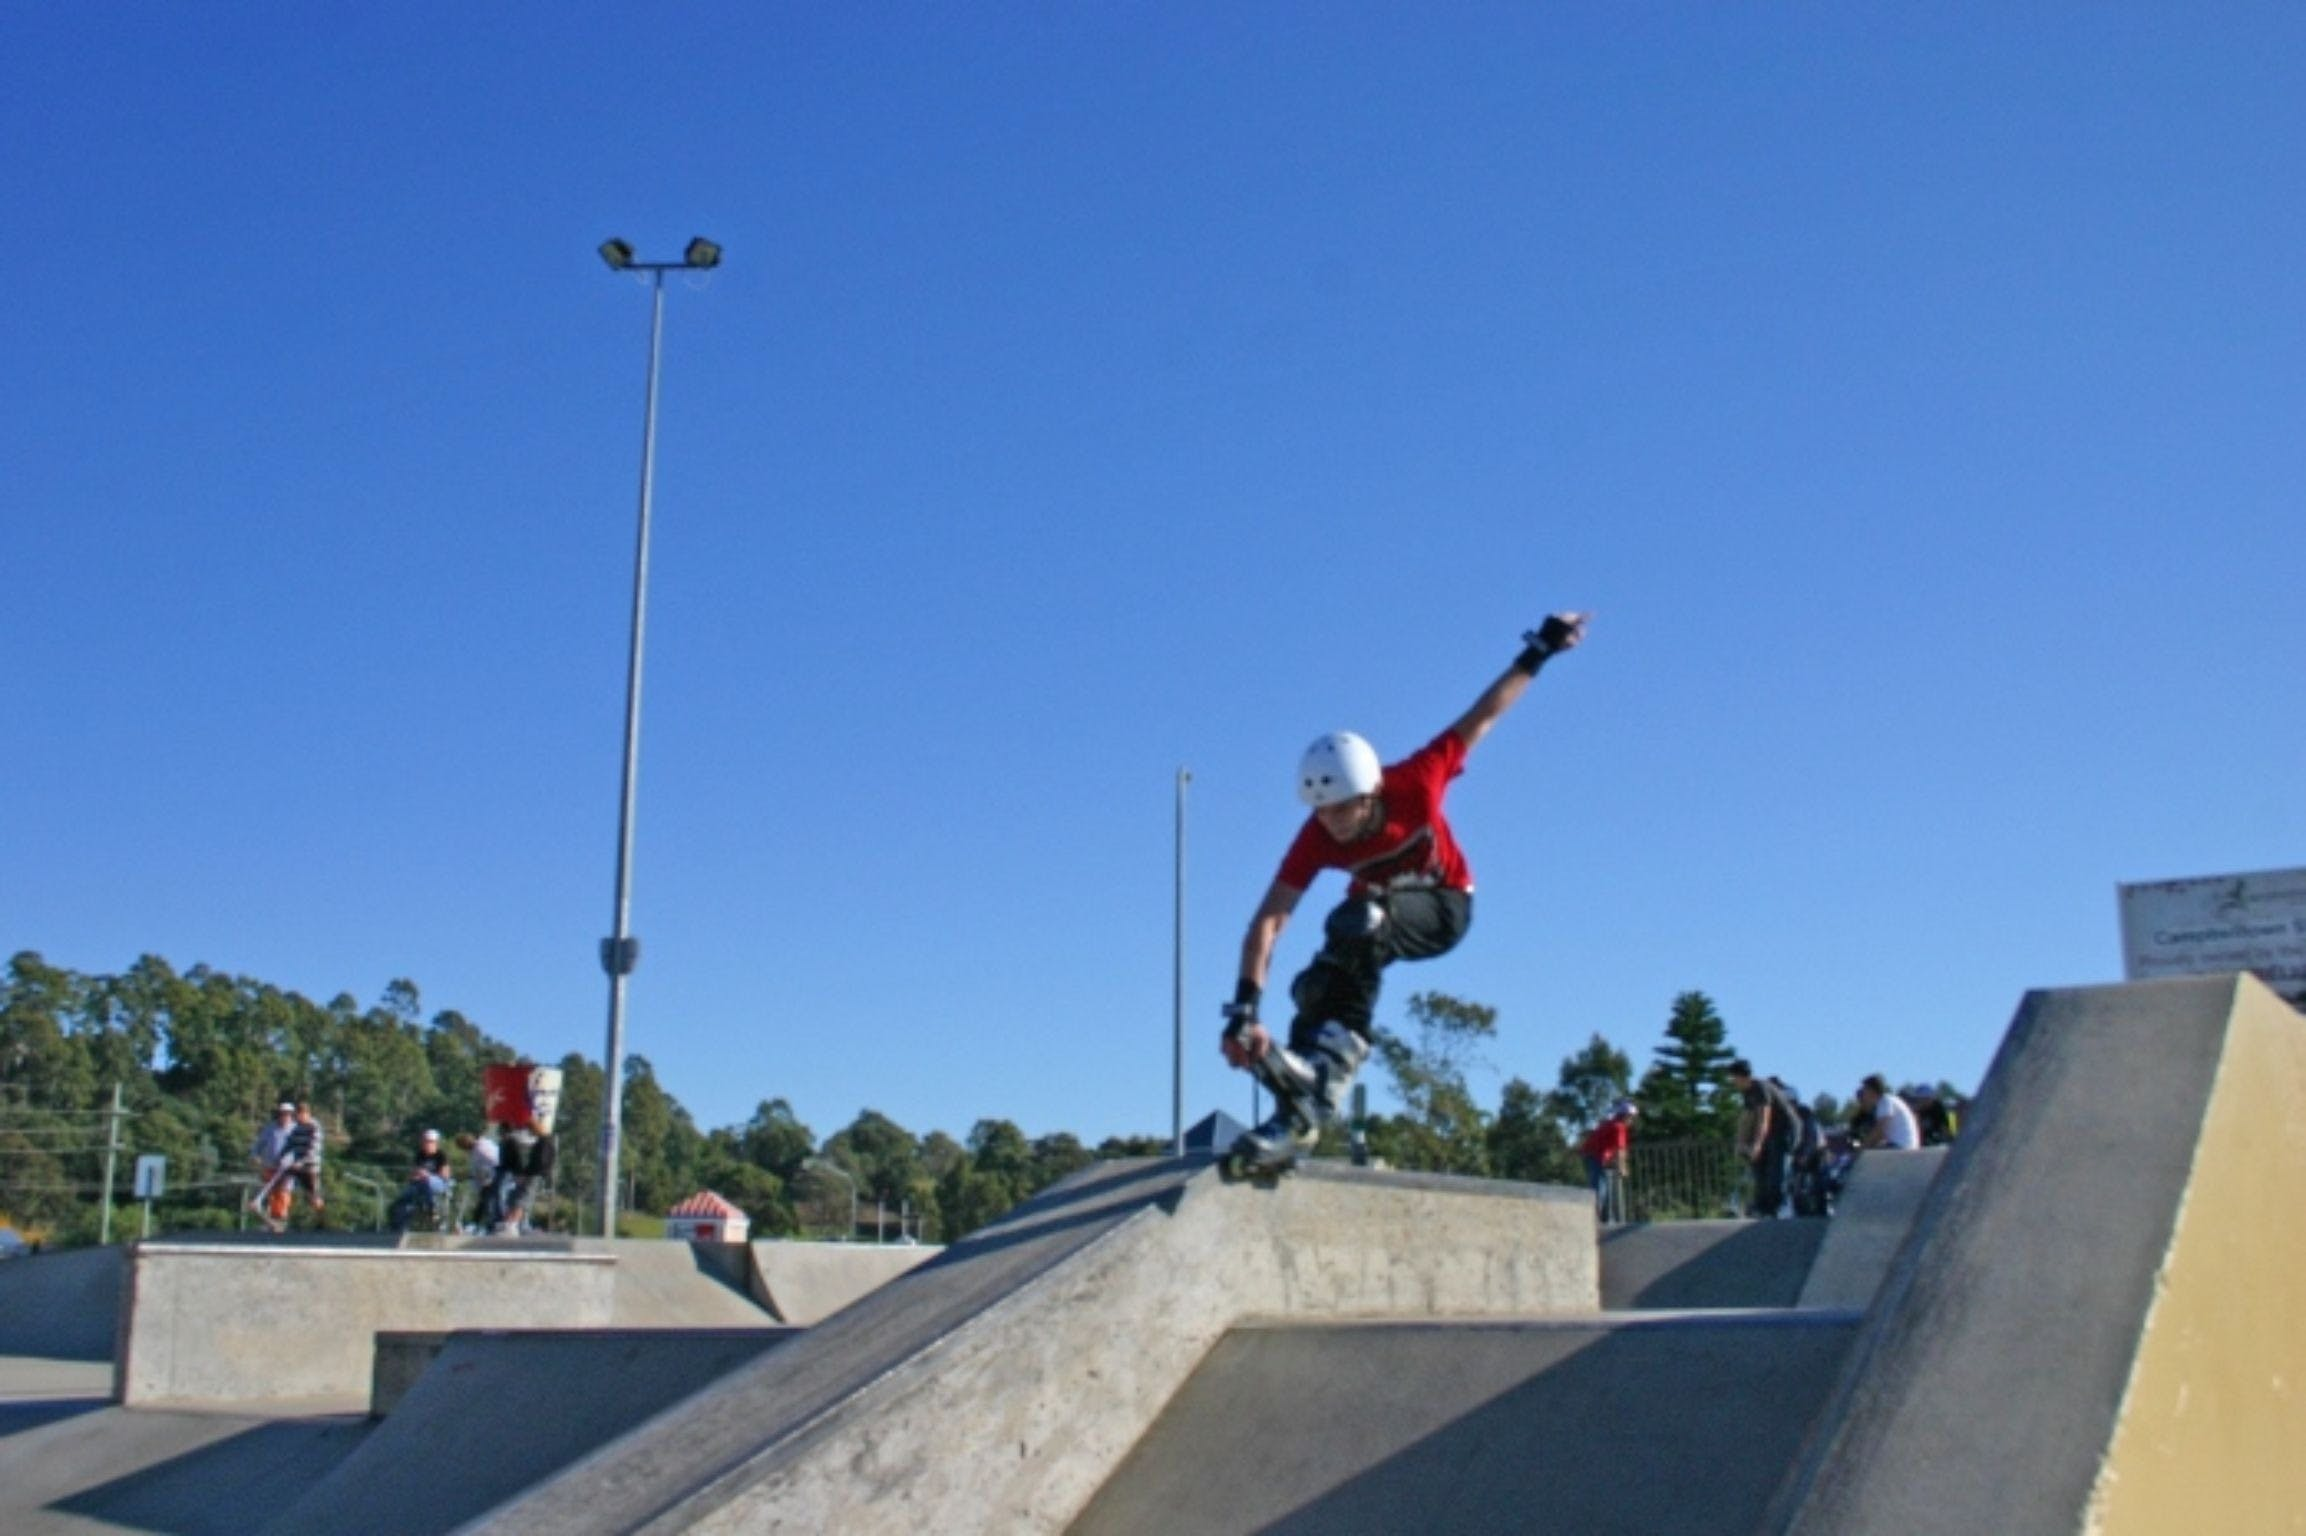 Macquarie Fields Skate Park - ACT Tourism